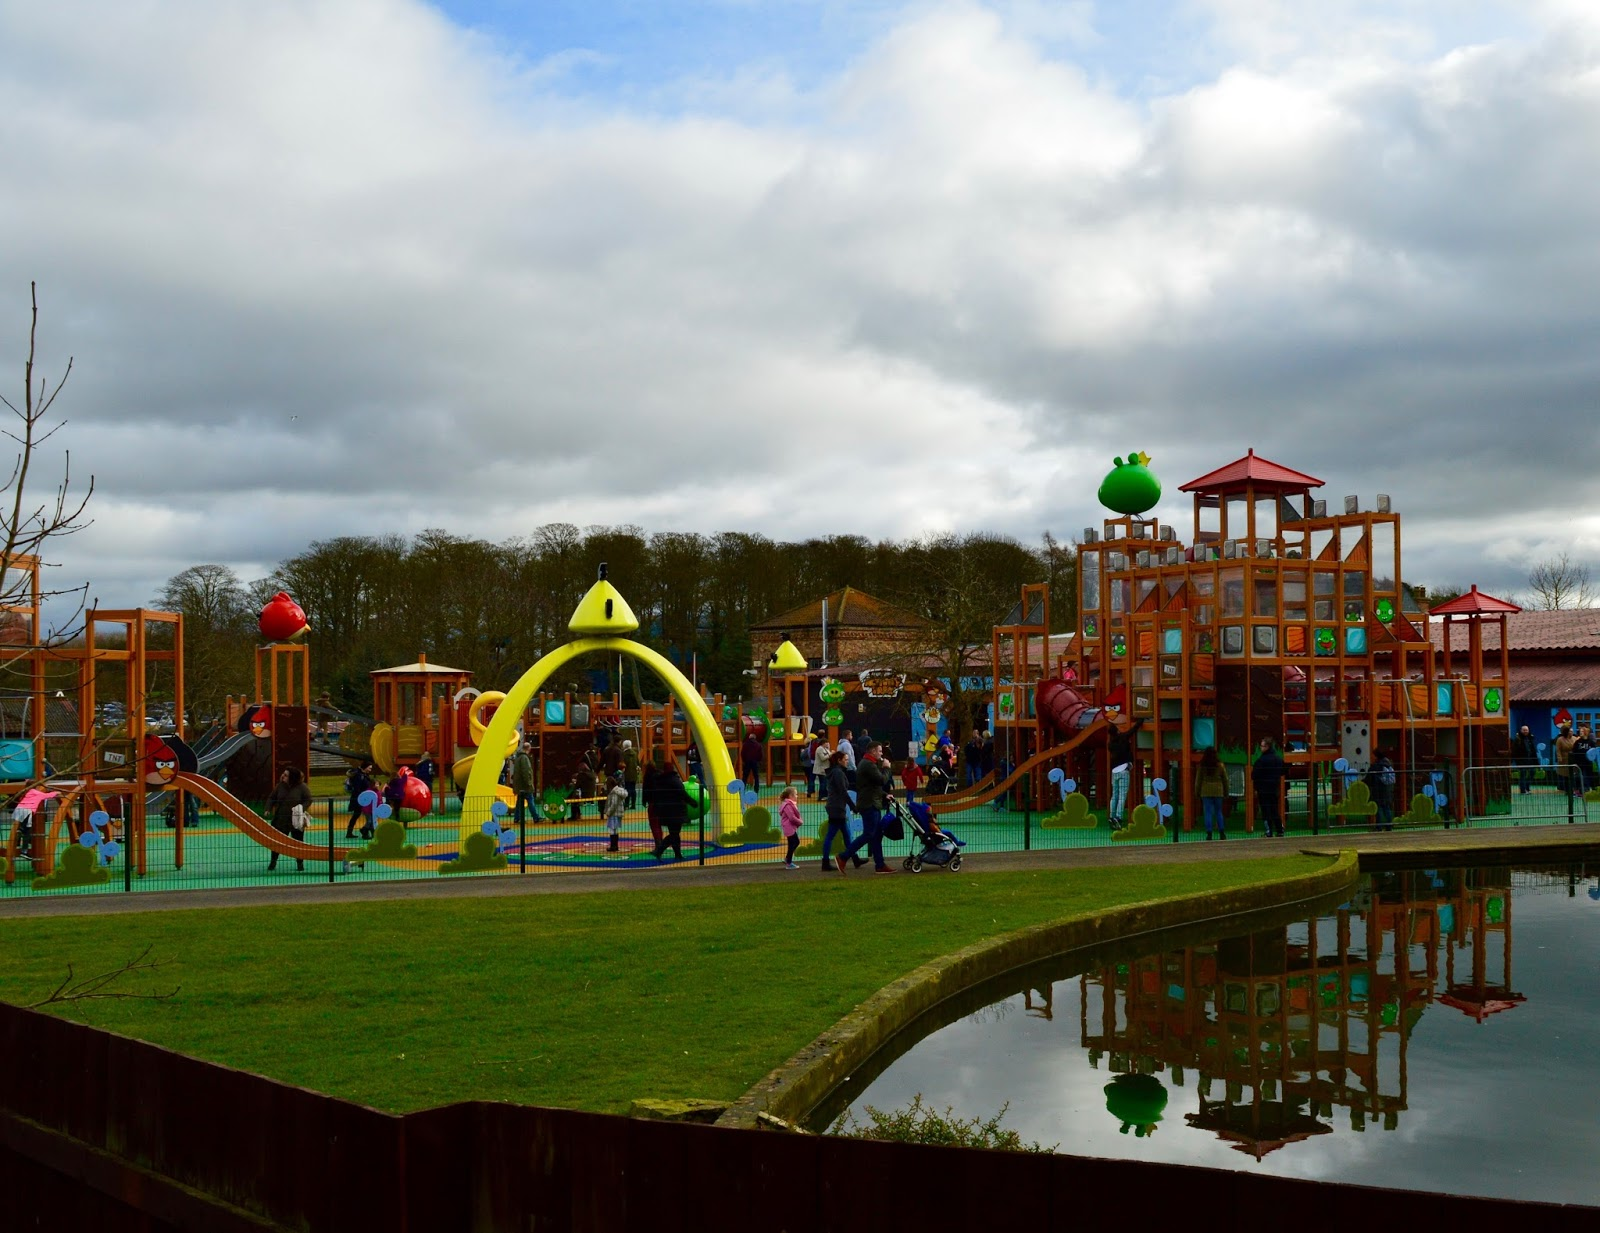 Visiting Angry Birds Activity Park at Lightwater Valley, North Yorkshire - whole play area